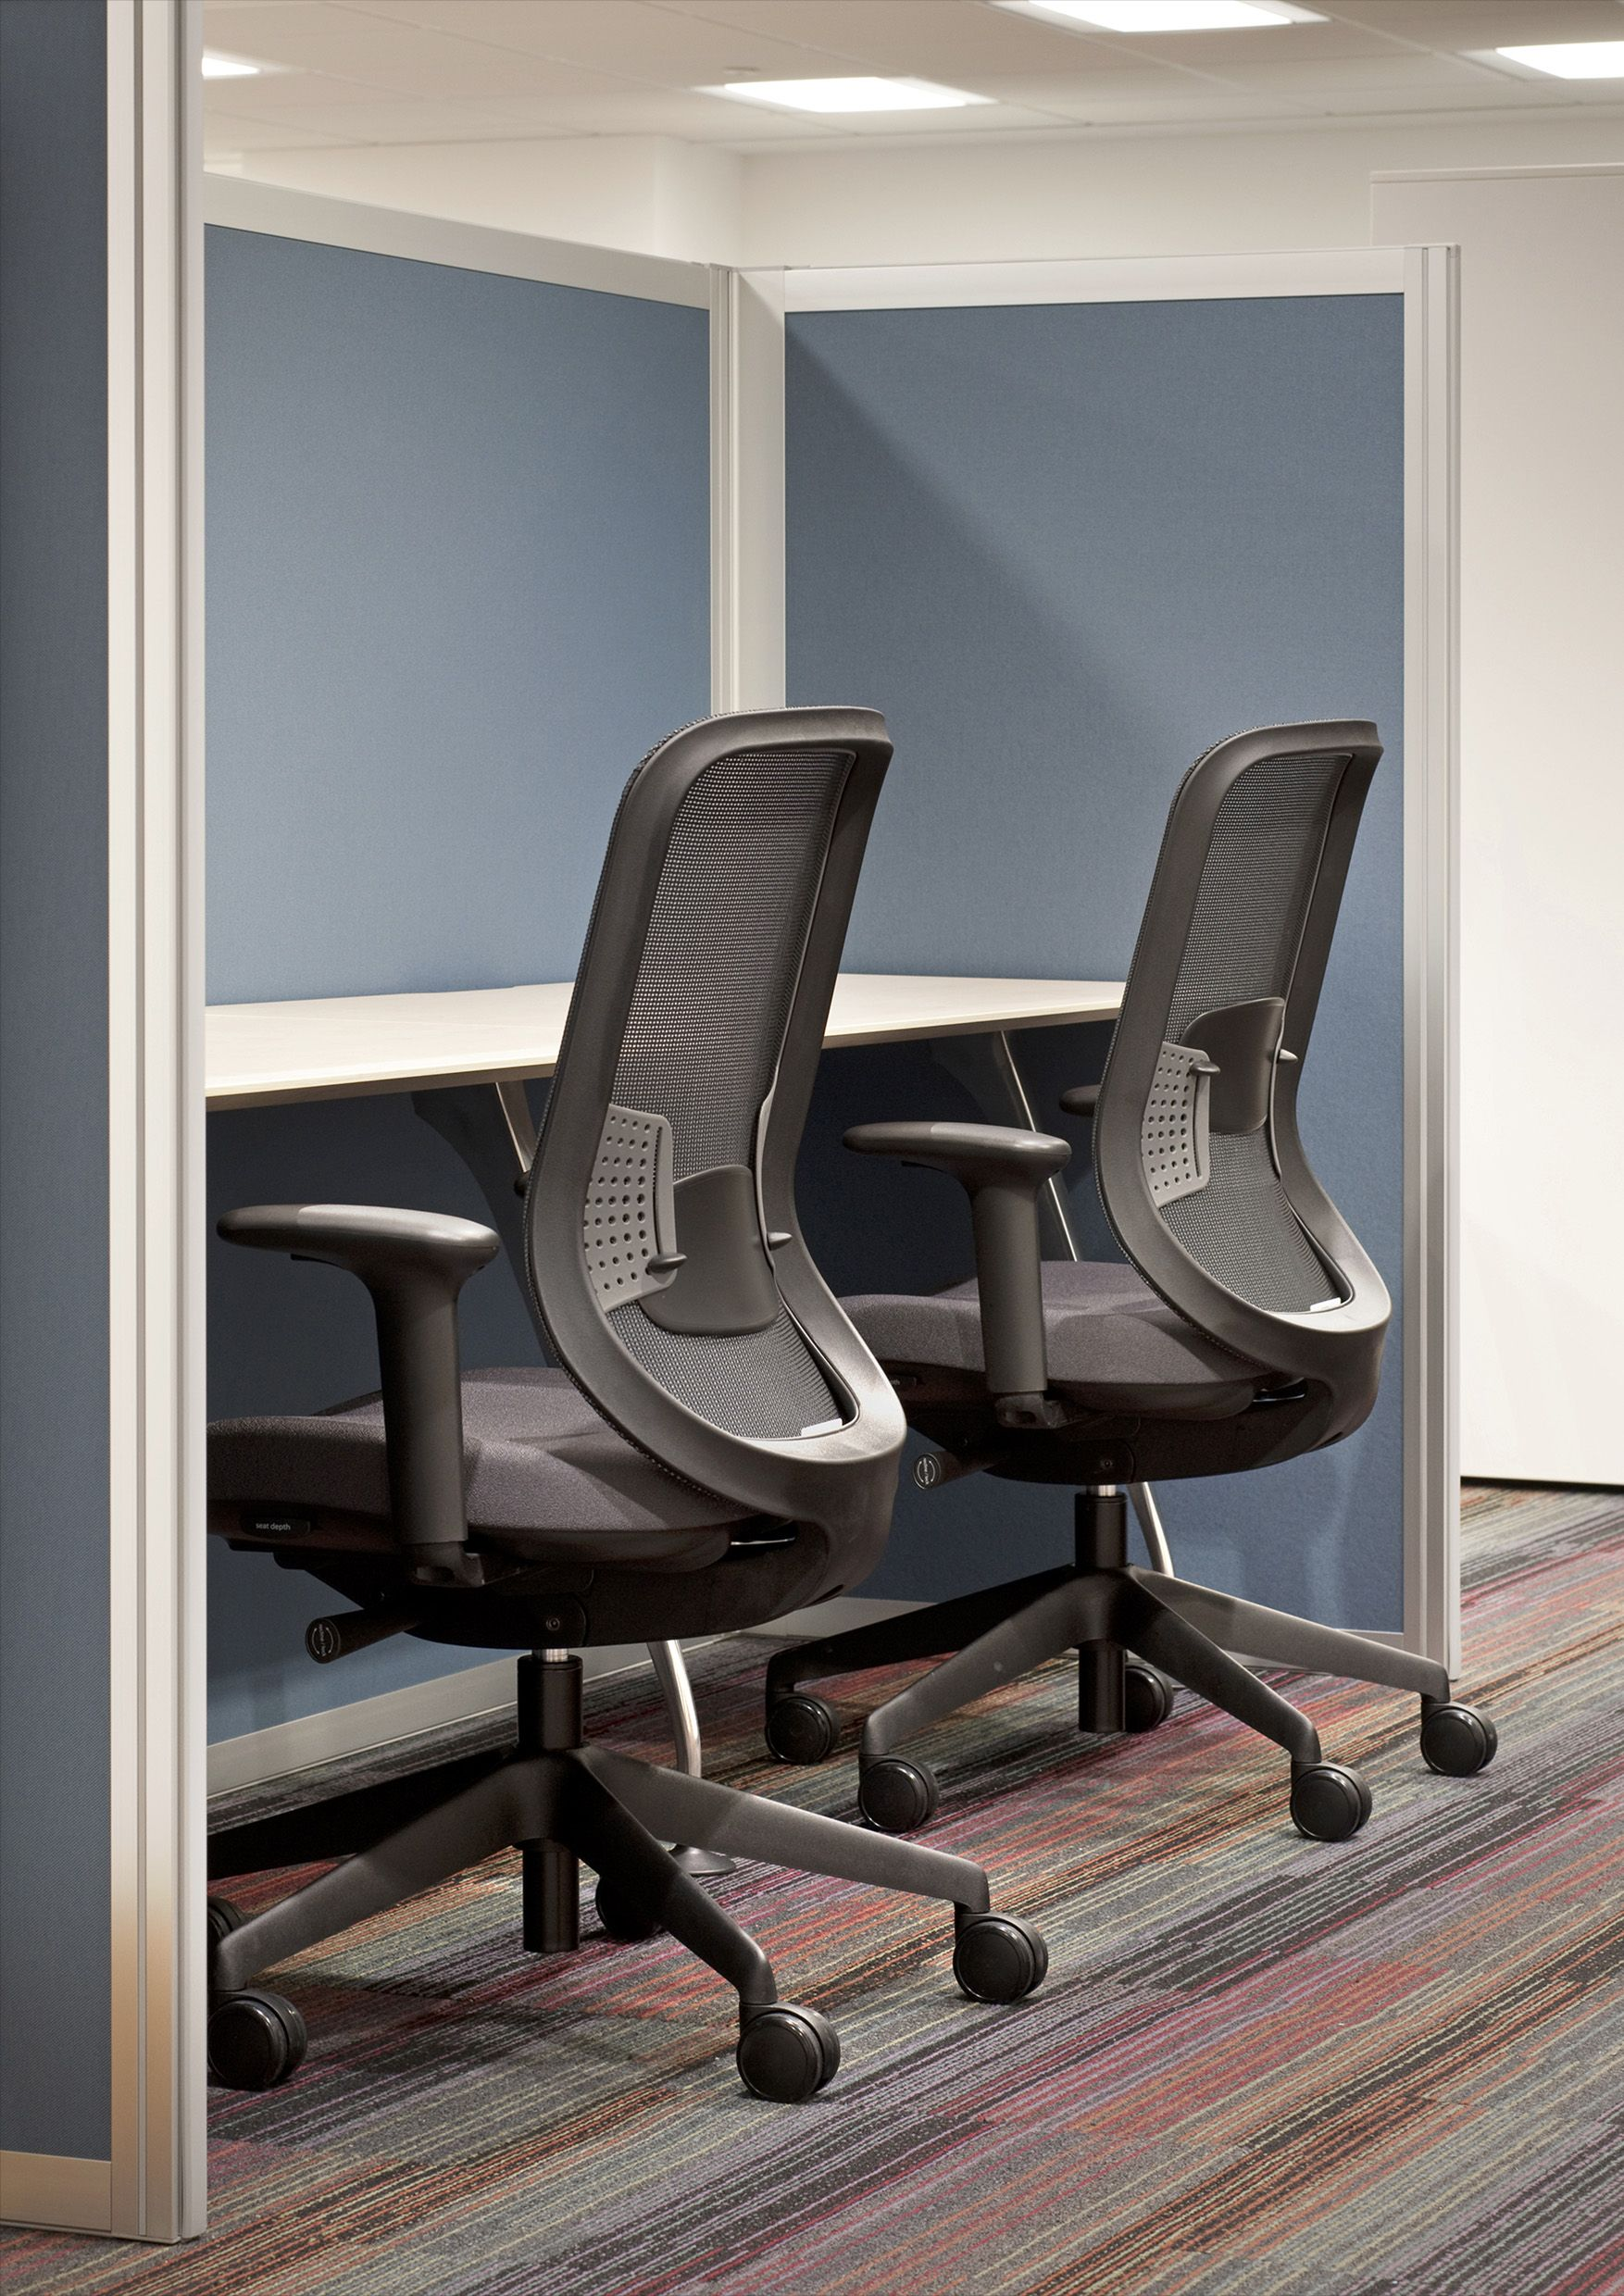 The Do by Orangebox is one of the industry s leading task chair